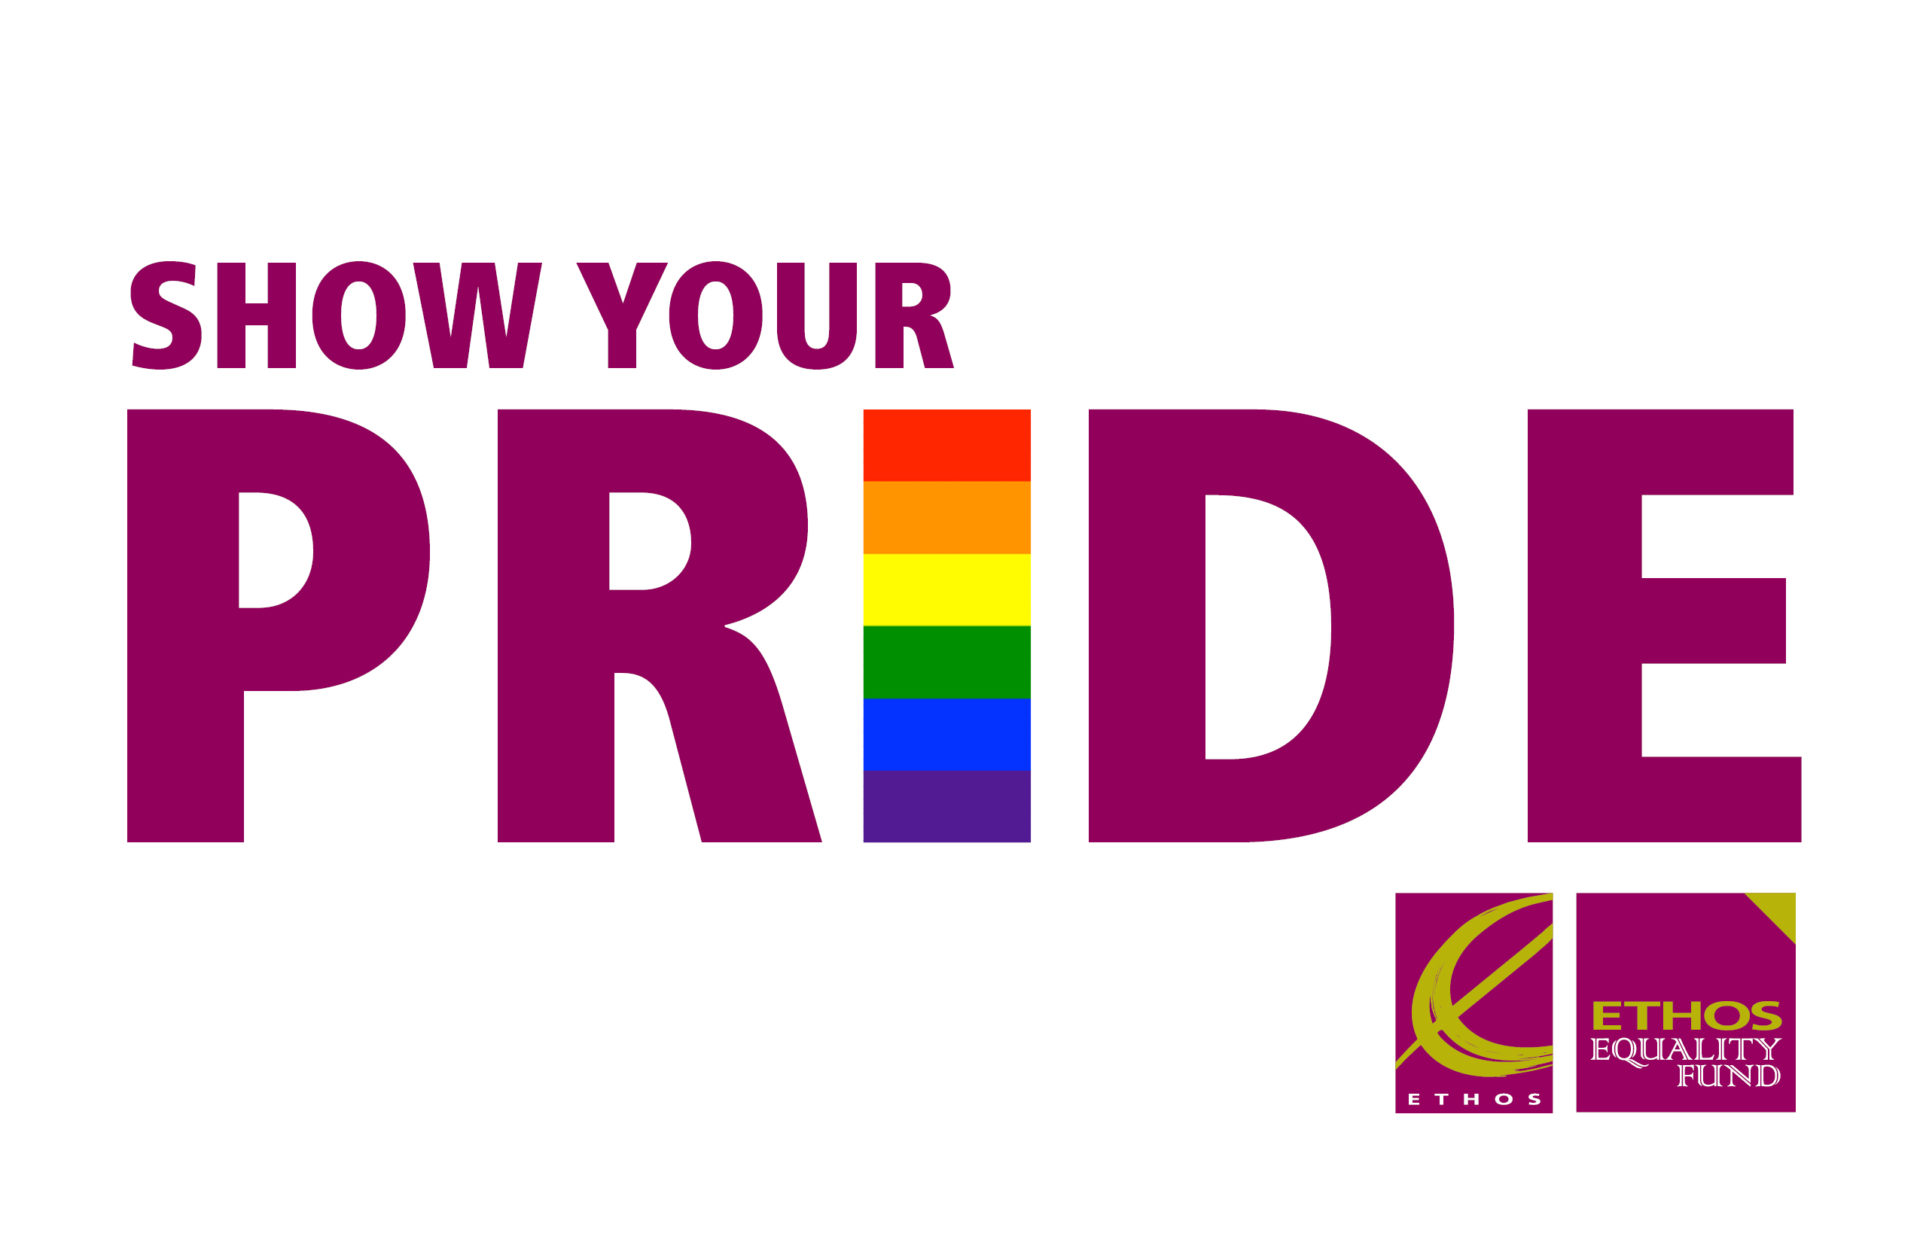 Show your PRIDE 2014